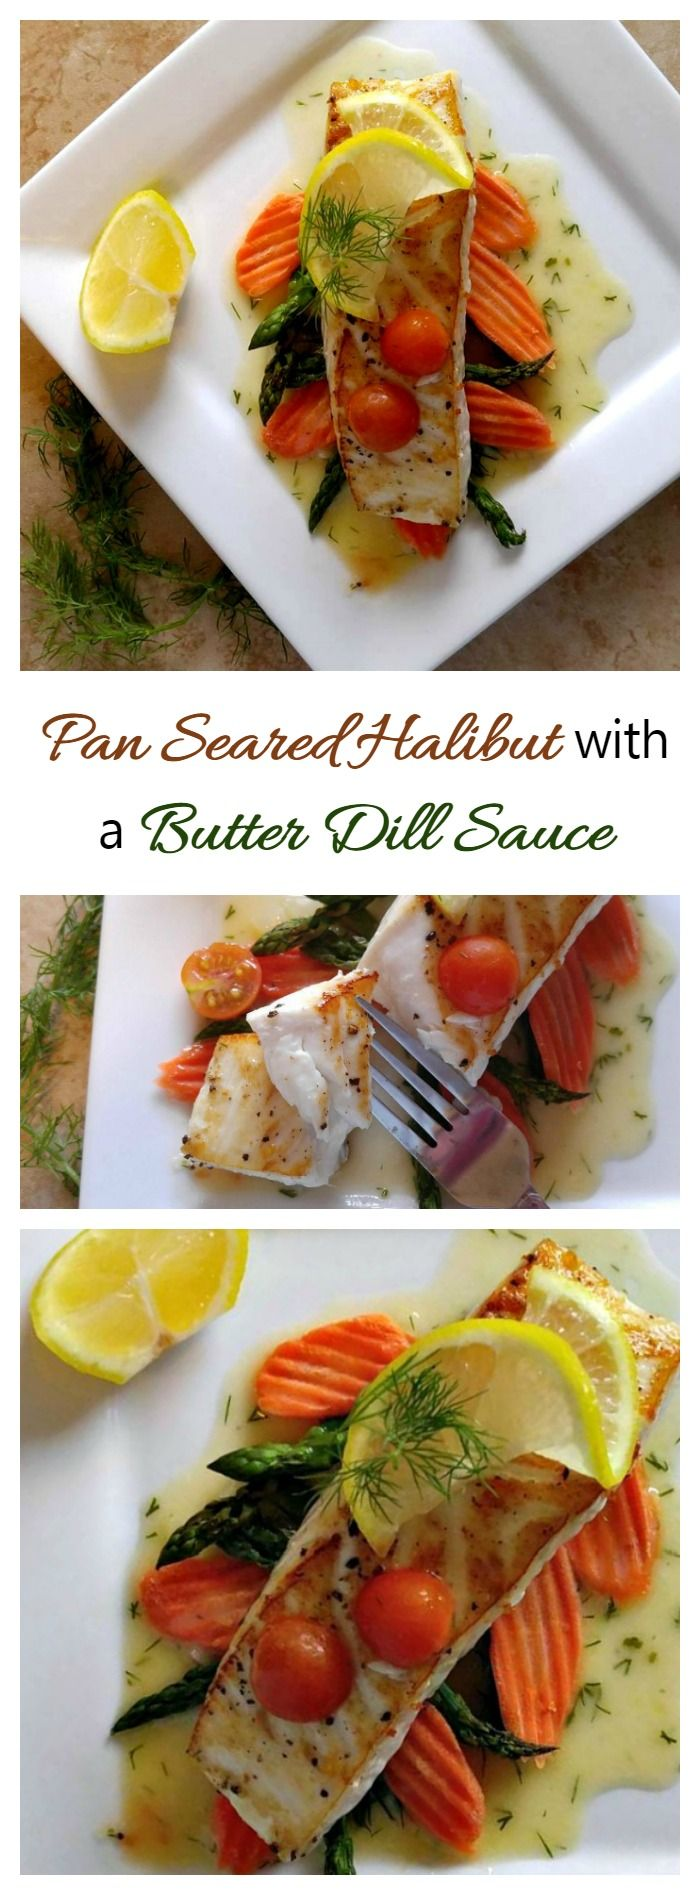 This Pan seared halibut with a butter dill sauce recipe is delicate and flavorful. The sauce is made before cooking the fish to make sure that the recipe turns out well every time. #ad #IC #AskForAlaska @alaskaseafood